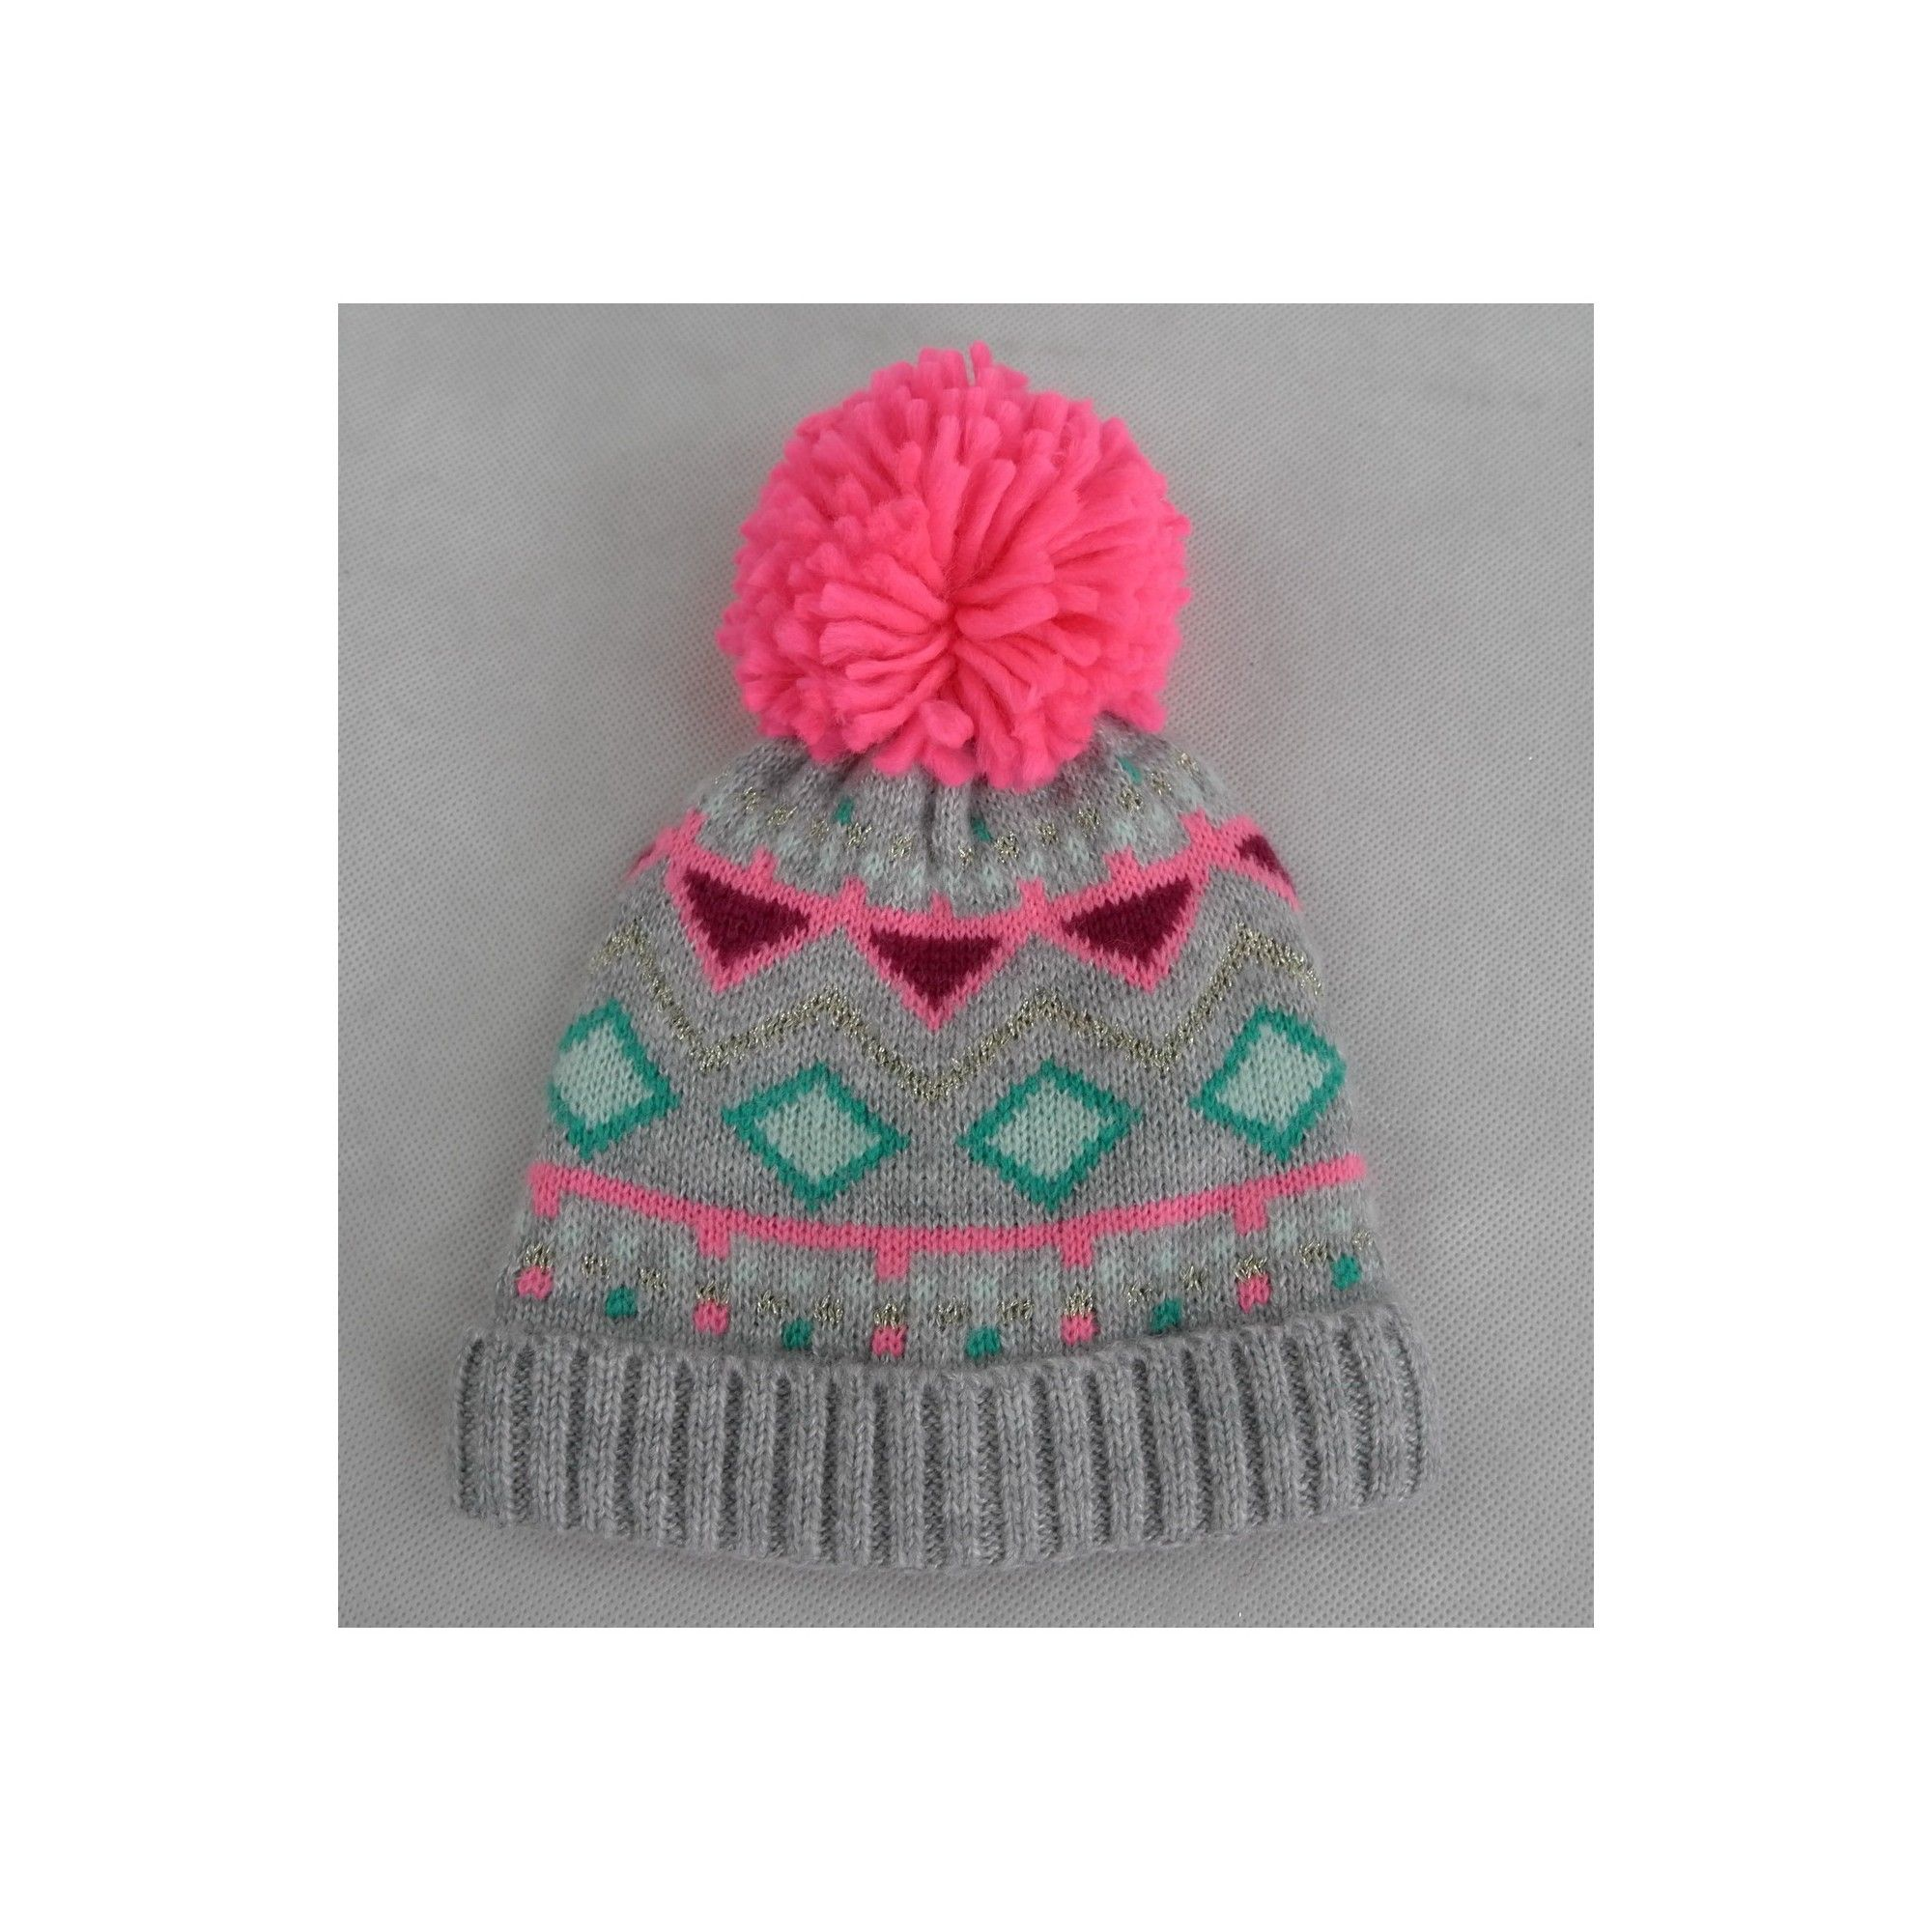 Toddler Girls  Knitted Fairisle Hat - Cat   Jack Pink 2T-5T in 2018 ... 702f557b4e9